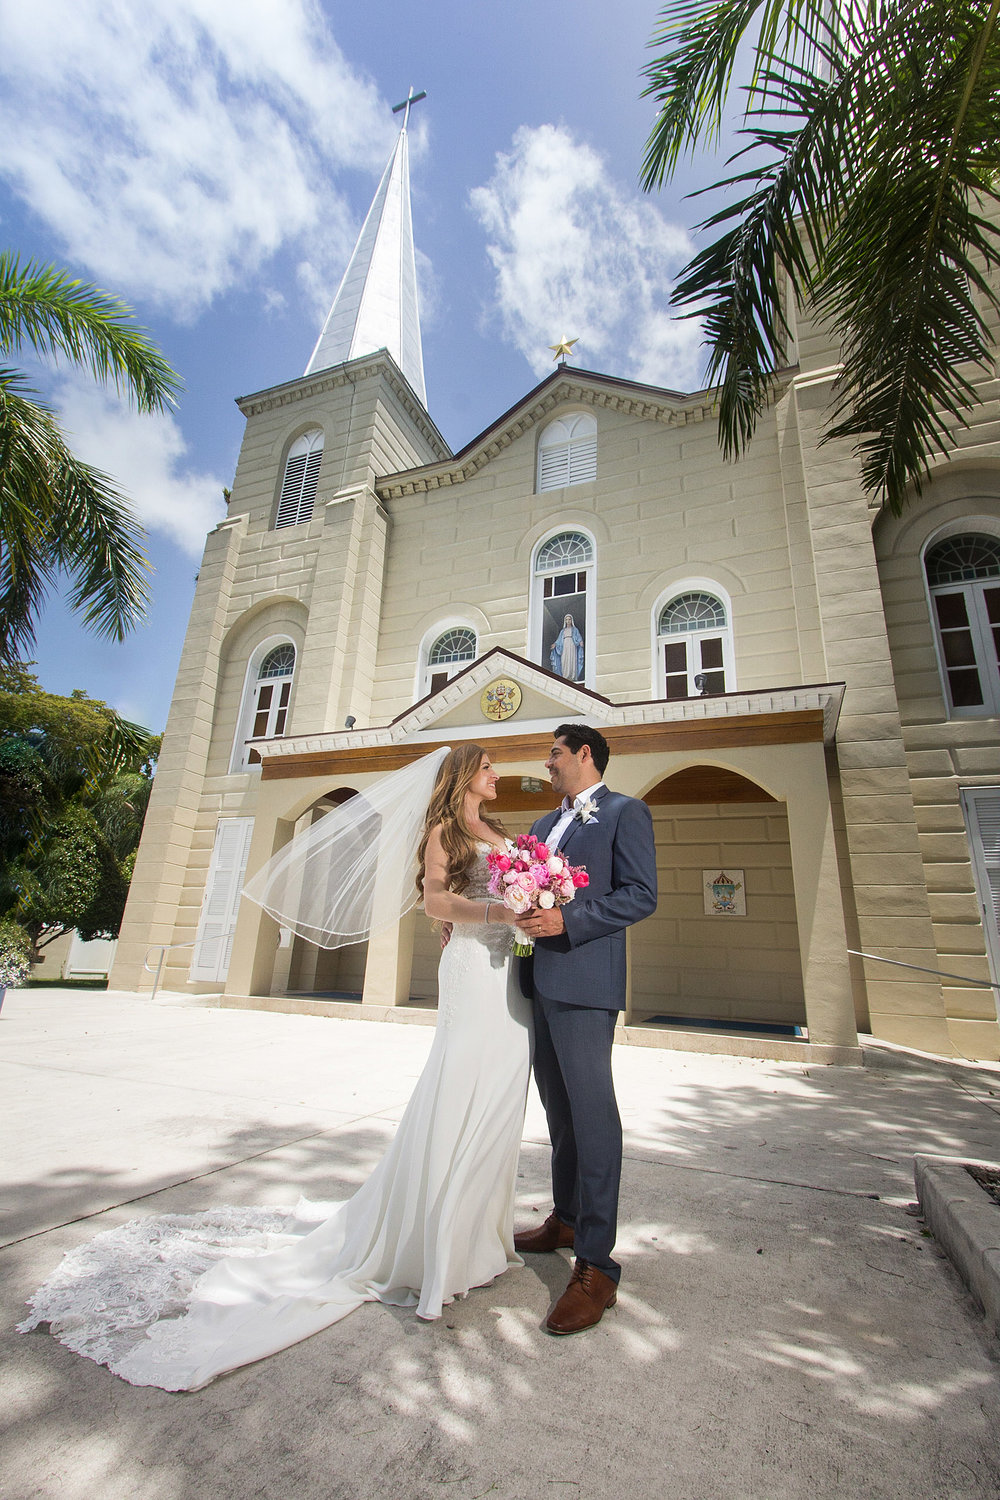 Couple Get Married at St Marys Basilica Key West.jpg